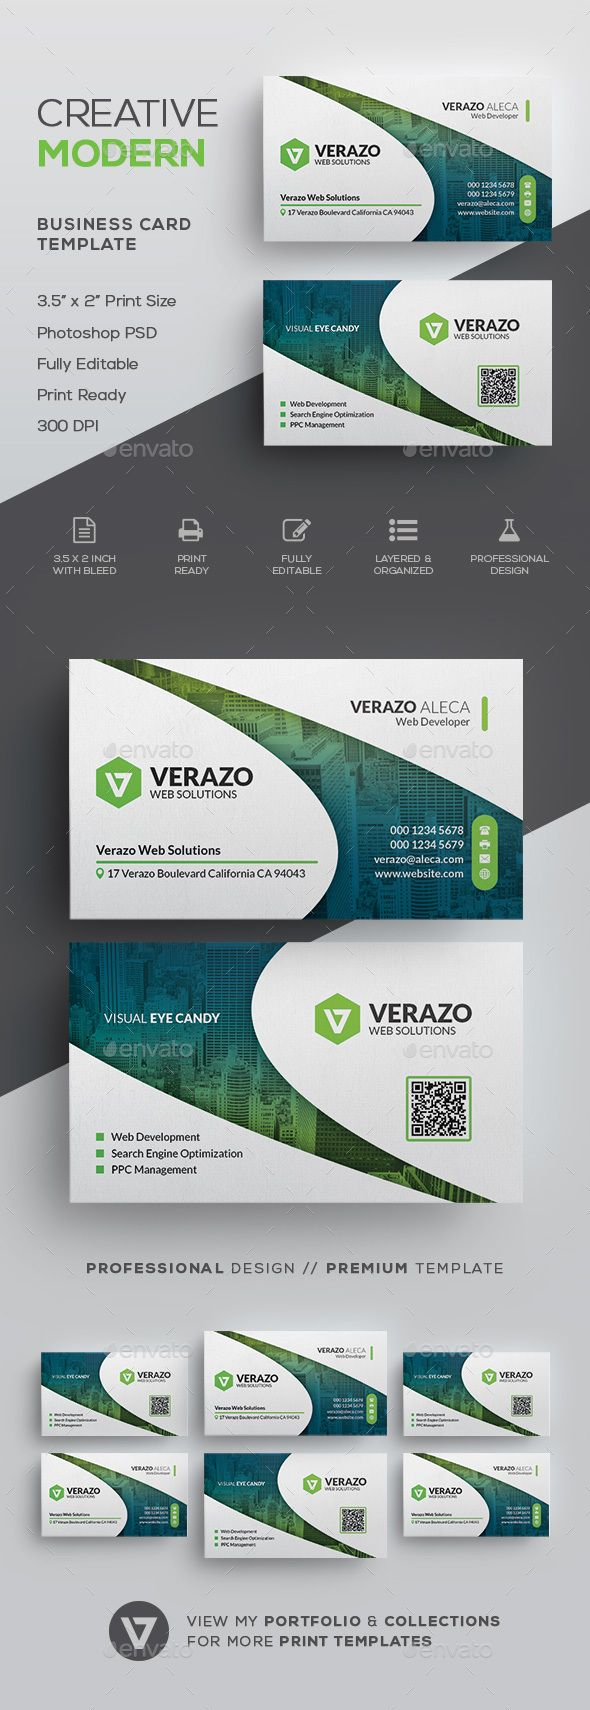 Clean Modern Corporate Business Card Template PSD